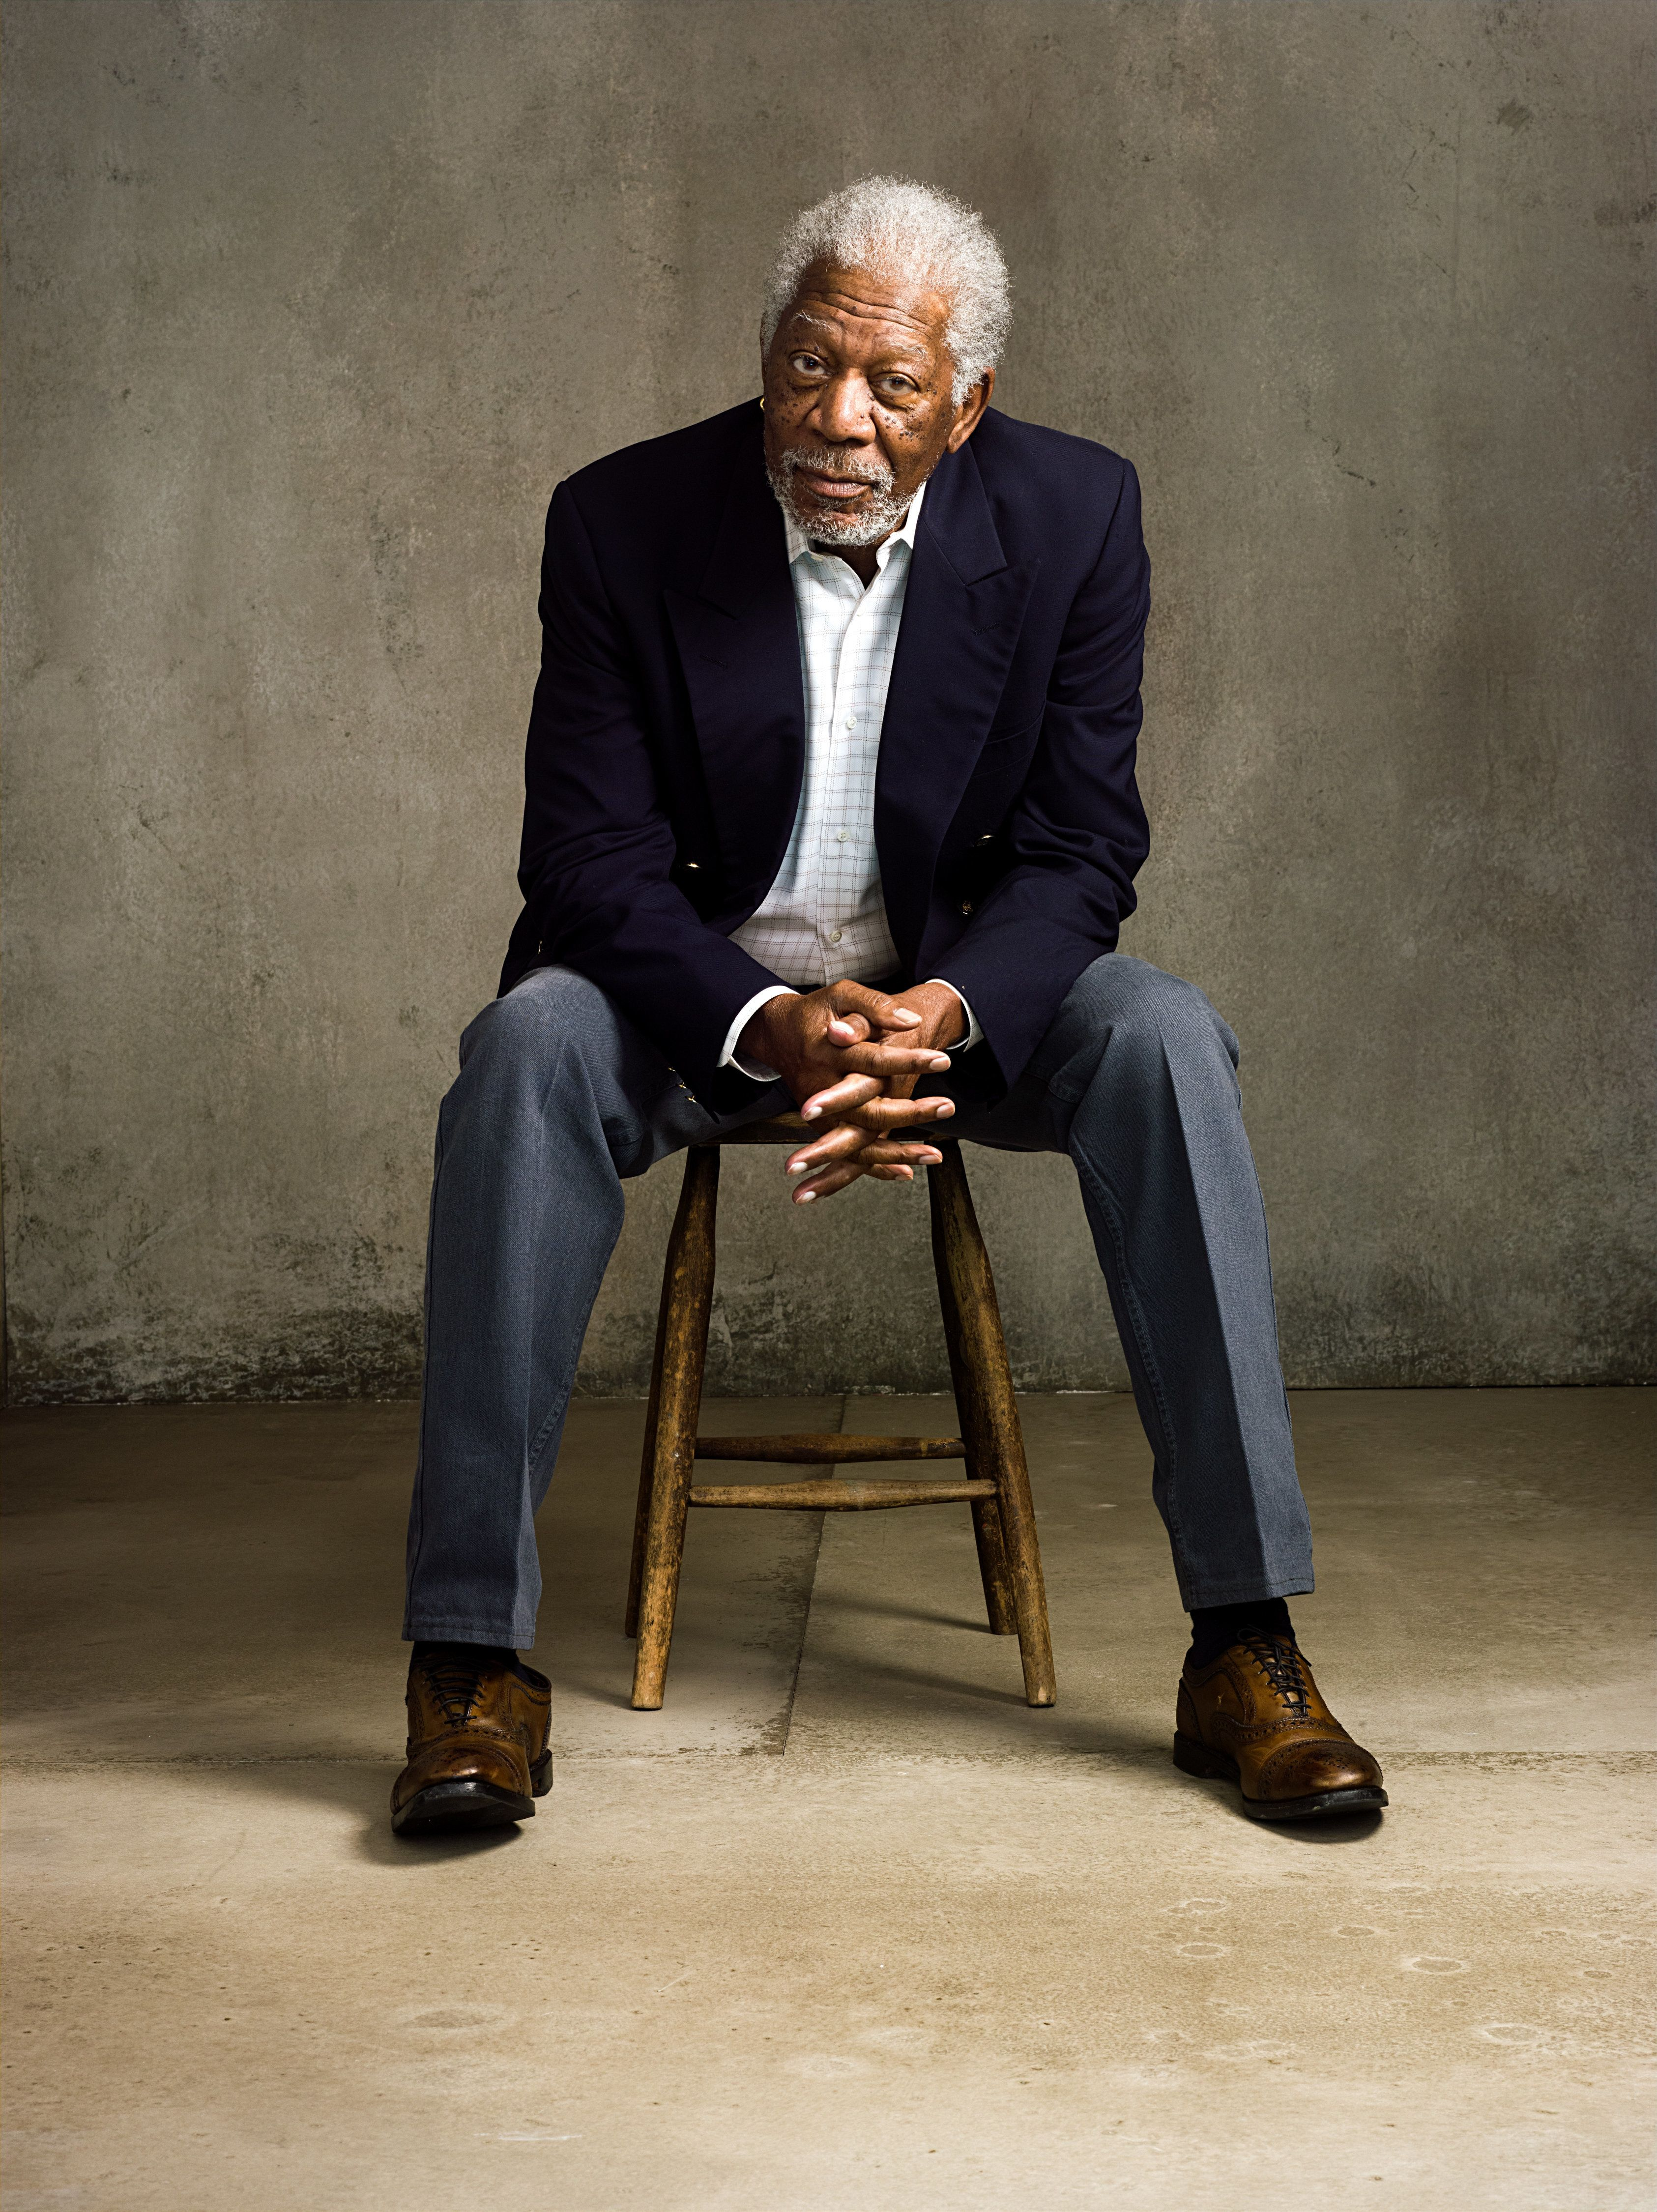 Morgan Freeman explores the power of miracles in the season finale of